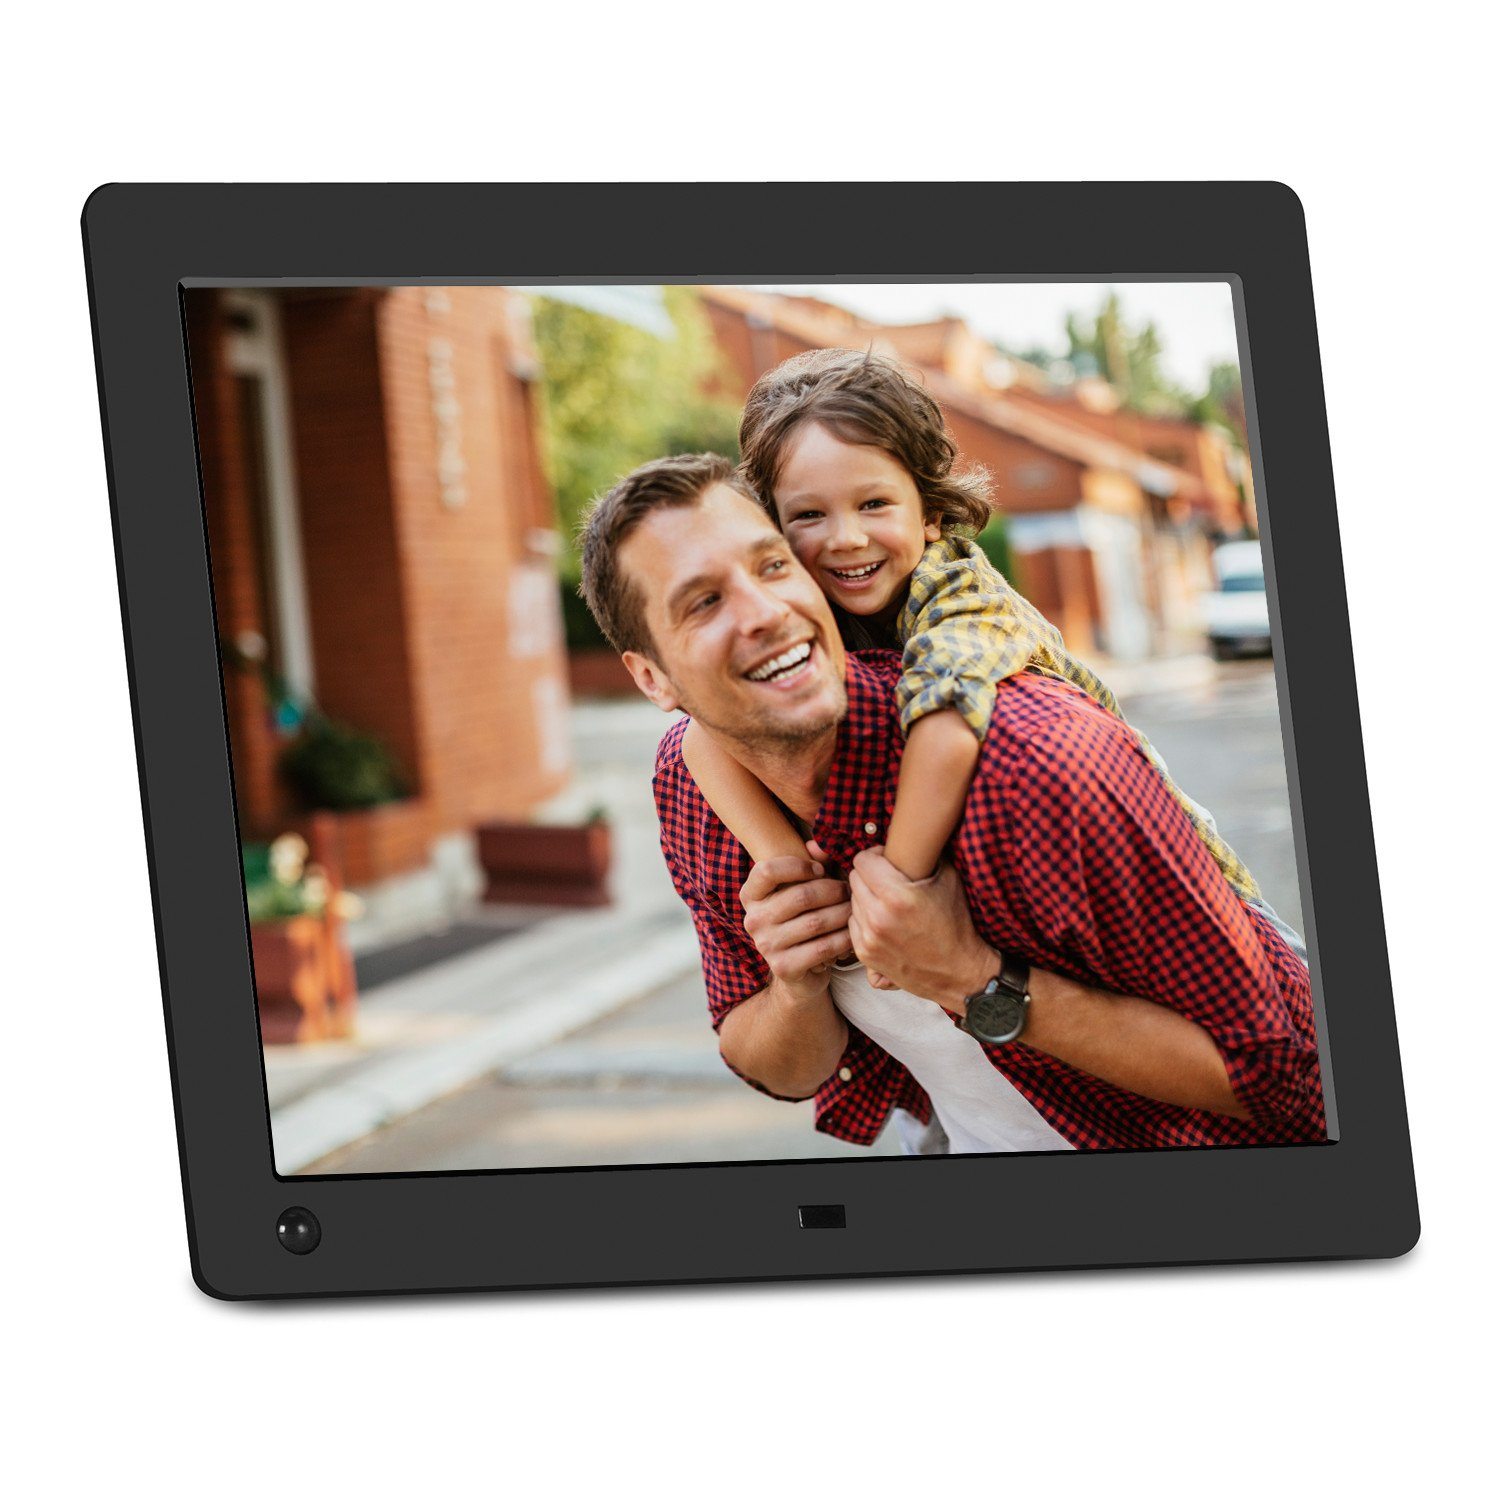 Amazon.com : NIX Advance - 10 inch Digital Photo & HD Video (720p ...